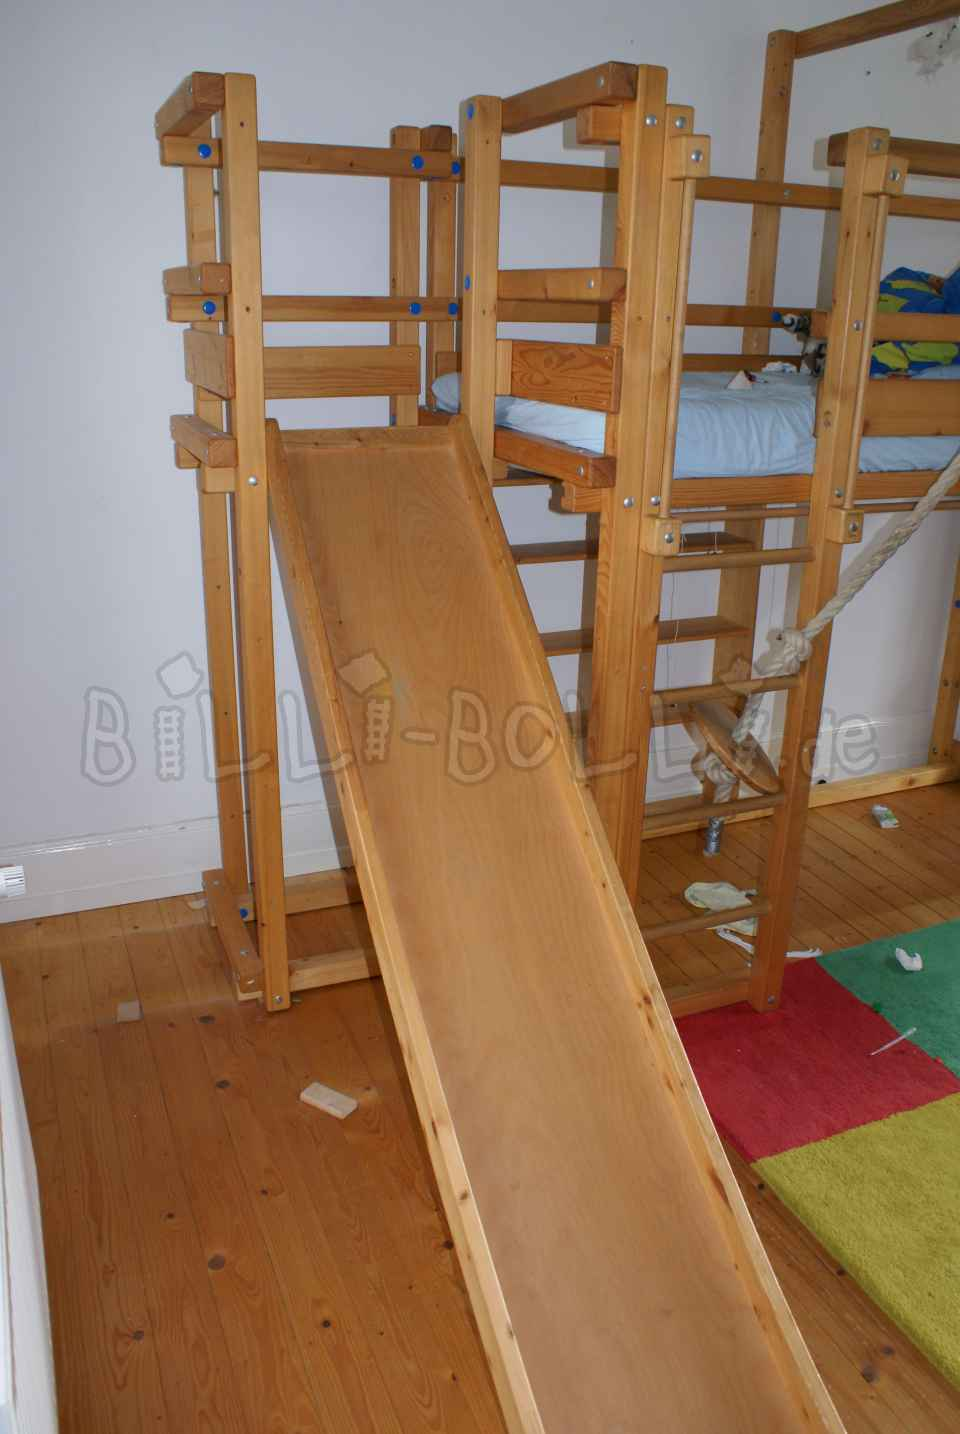 Co-growing high bed & slide tower with slide oiled in spruce (second hand loft bed)